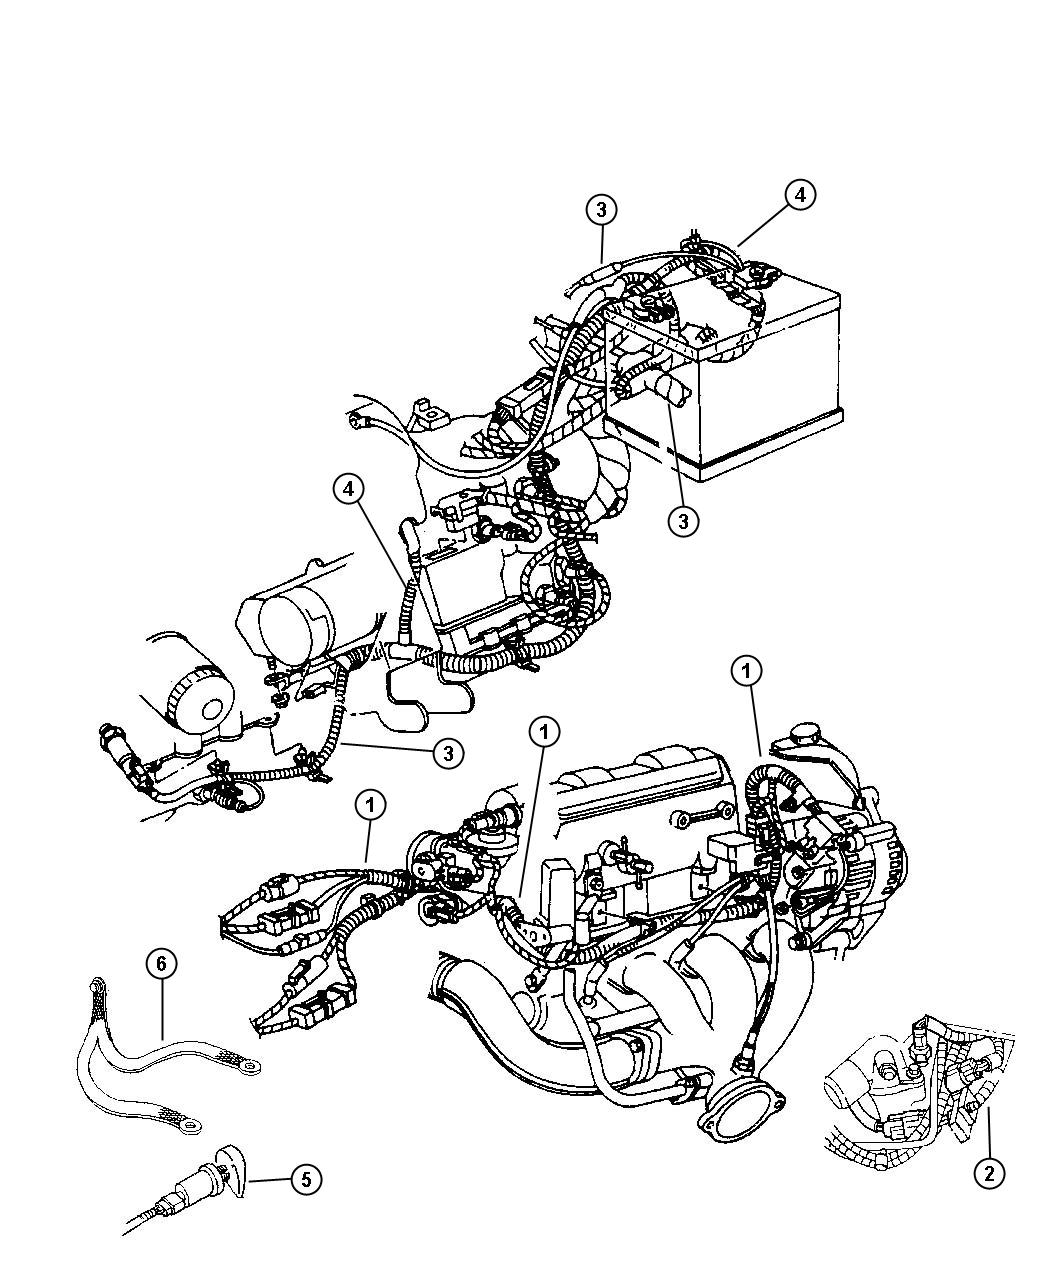 Dodge Intrepid Wiring Engine And Related Parts